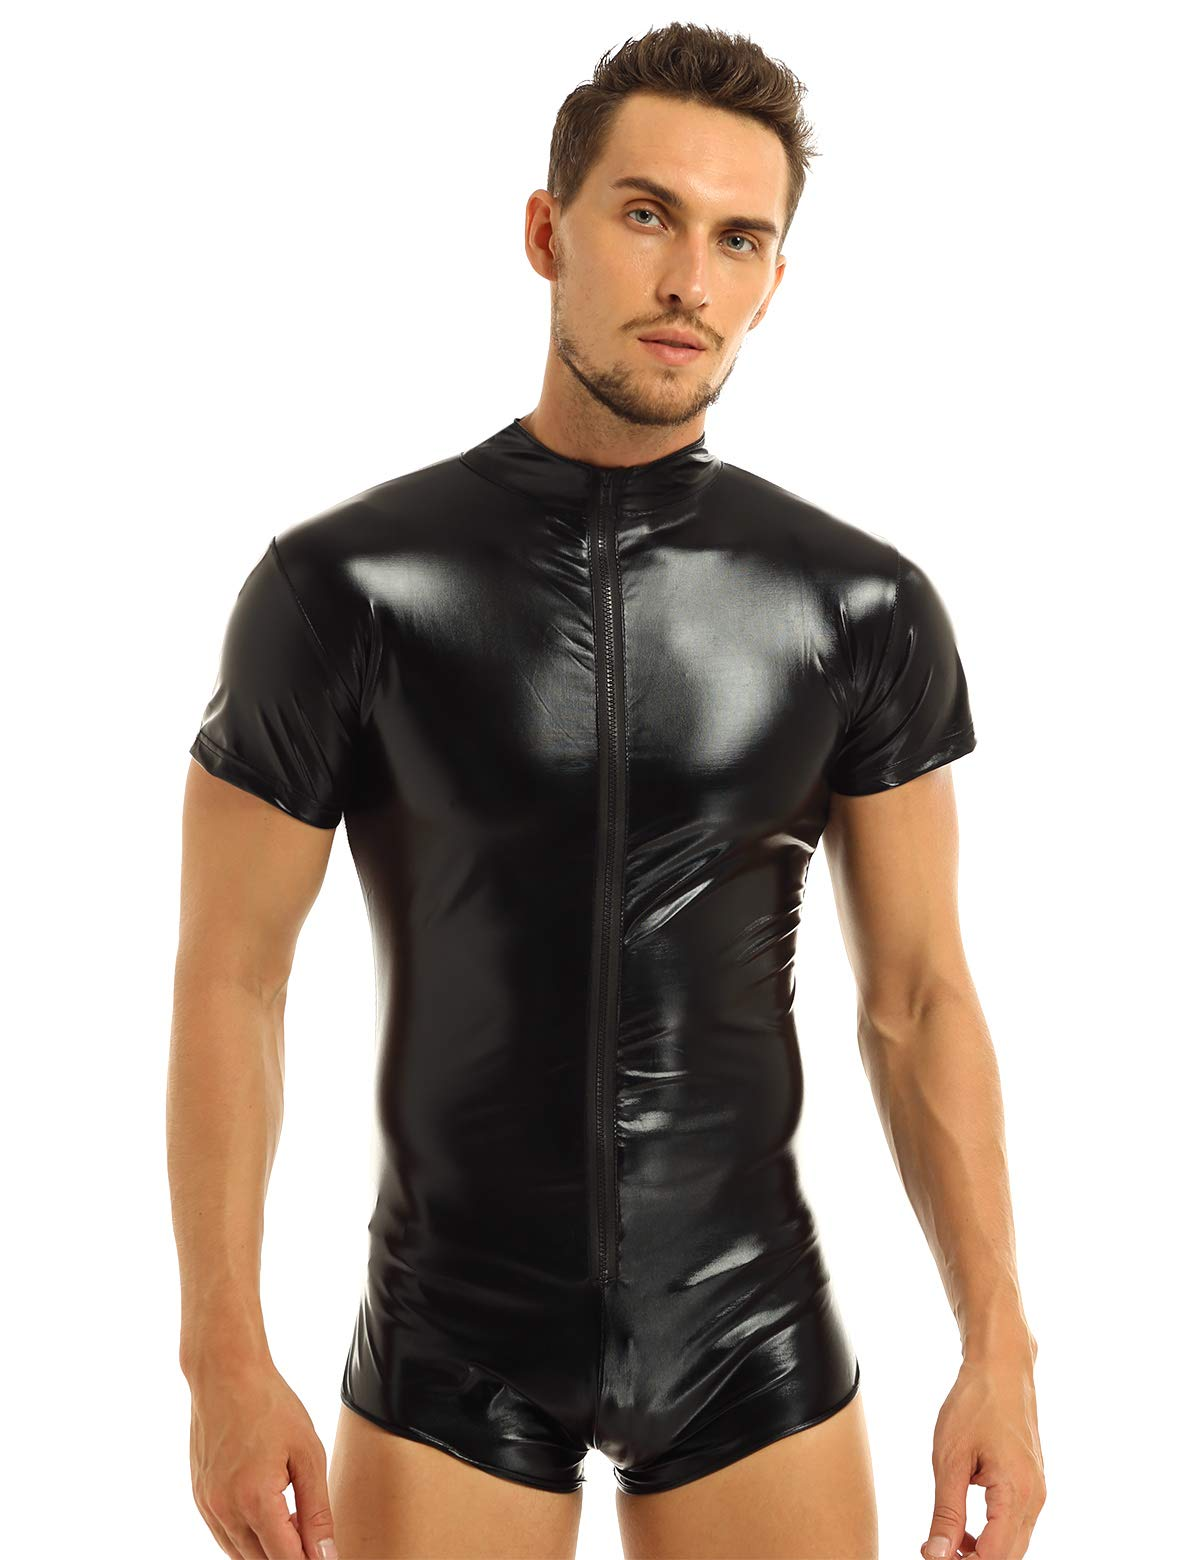 Msemis Mens Metallic Shiny Front Zipper Short Sleeve Leotard Bodysuit Boxer Briefs Jumpsuit Black Small